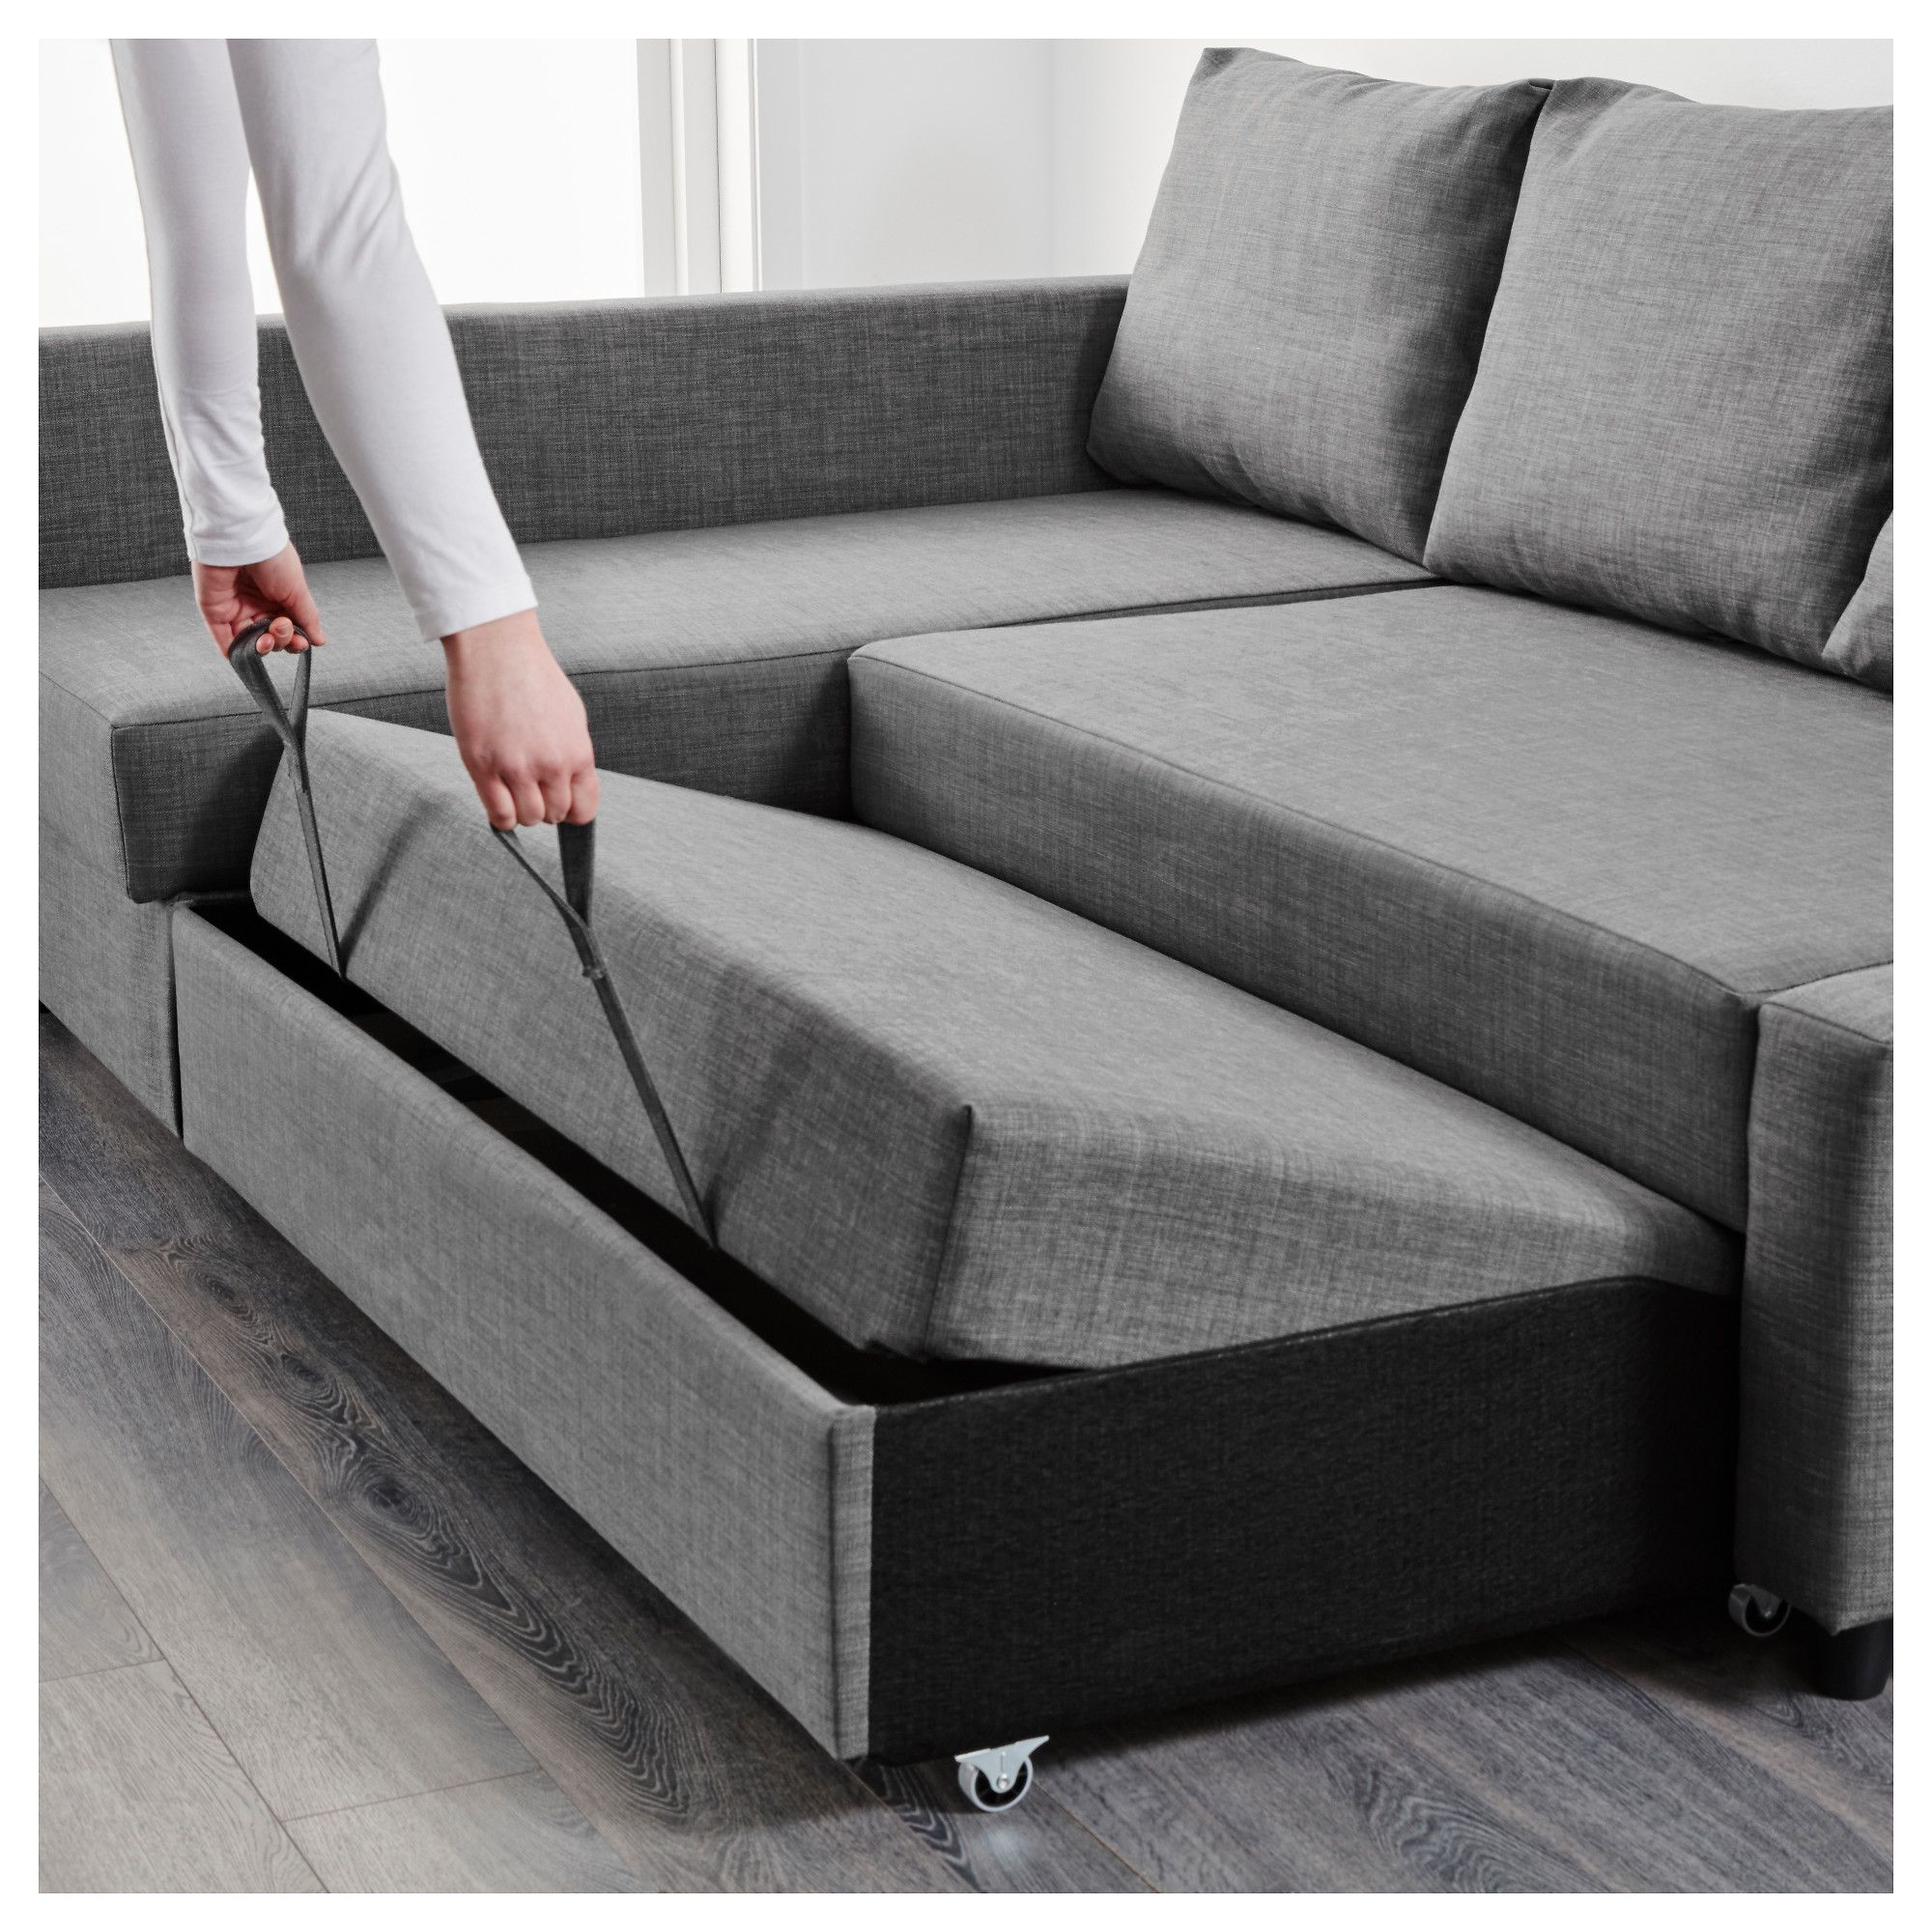 Chair Converts To Bed Sofa Converts To Bed Sofa Convertible Furniture Castro